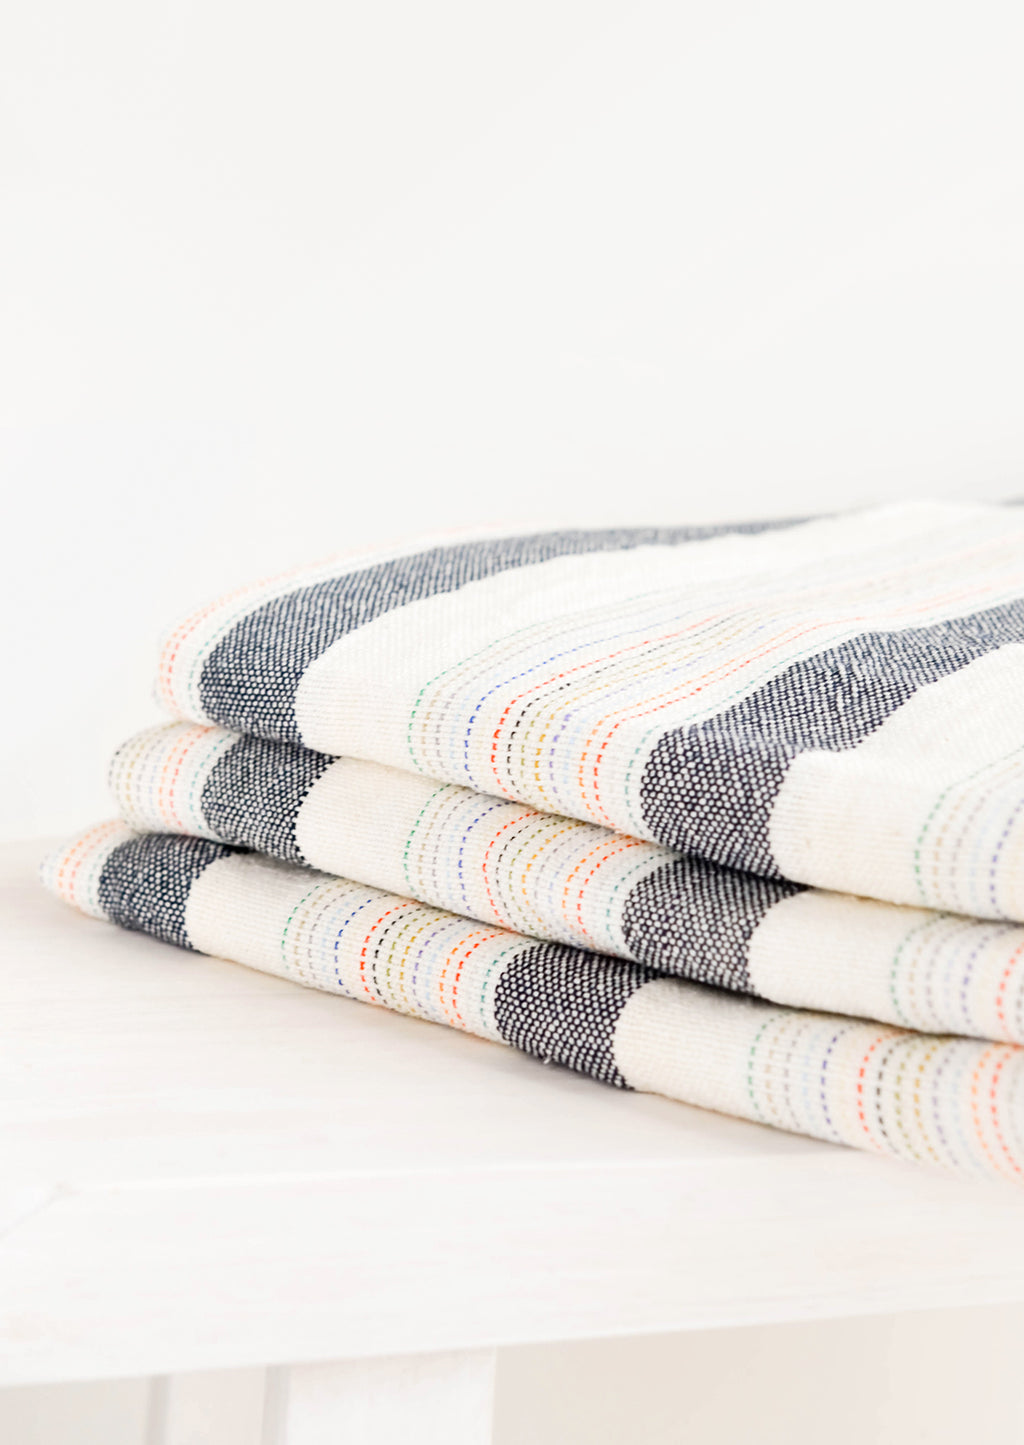 2: Stack of Cotton Turkish Towel in Natural & Charcoal with Rainbow Colored Stitching - LEIF